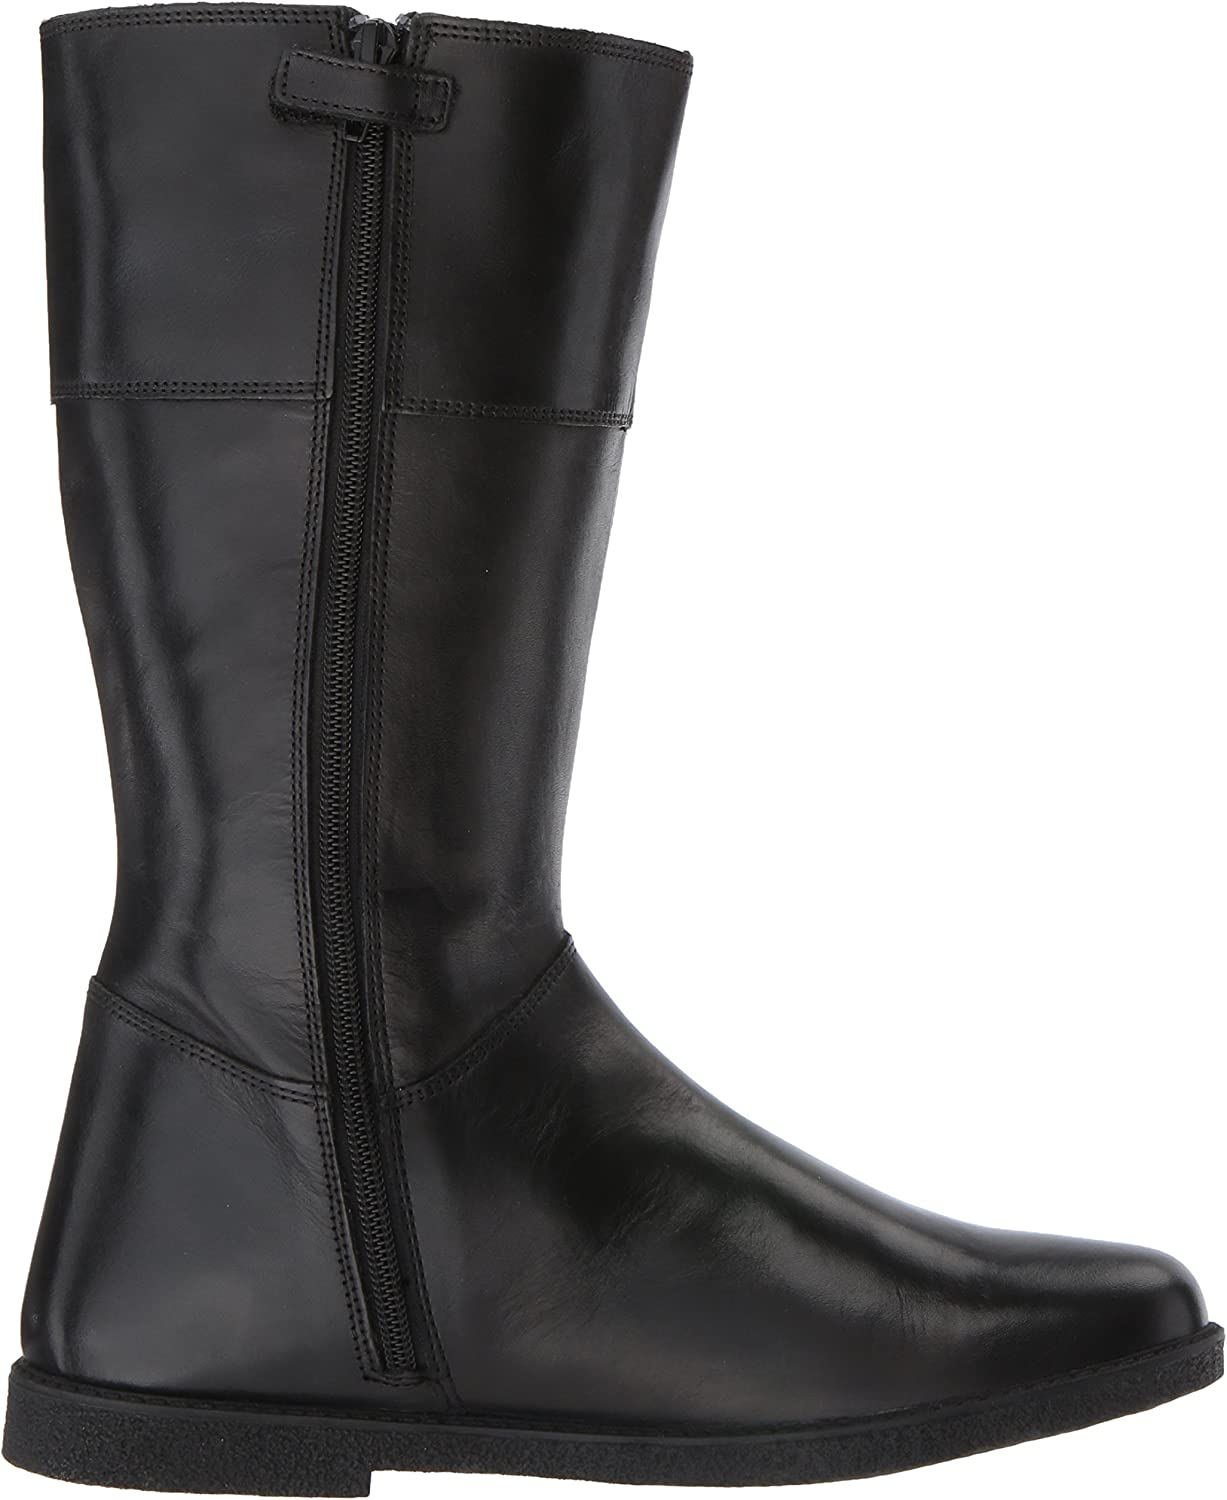 Geox Shawntel Girl 4 Knee High Boot 9 US Black 26 M EU Toddler